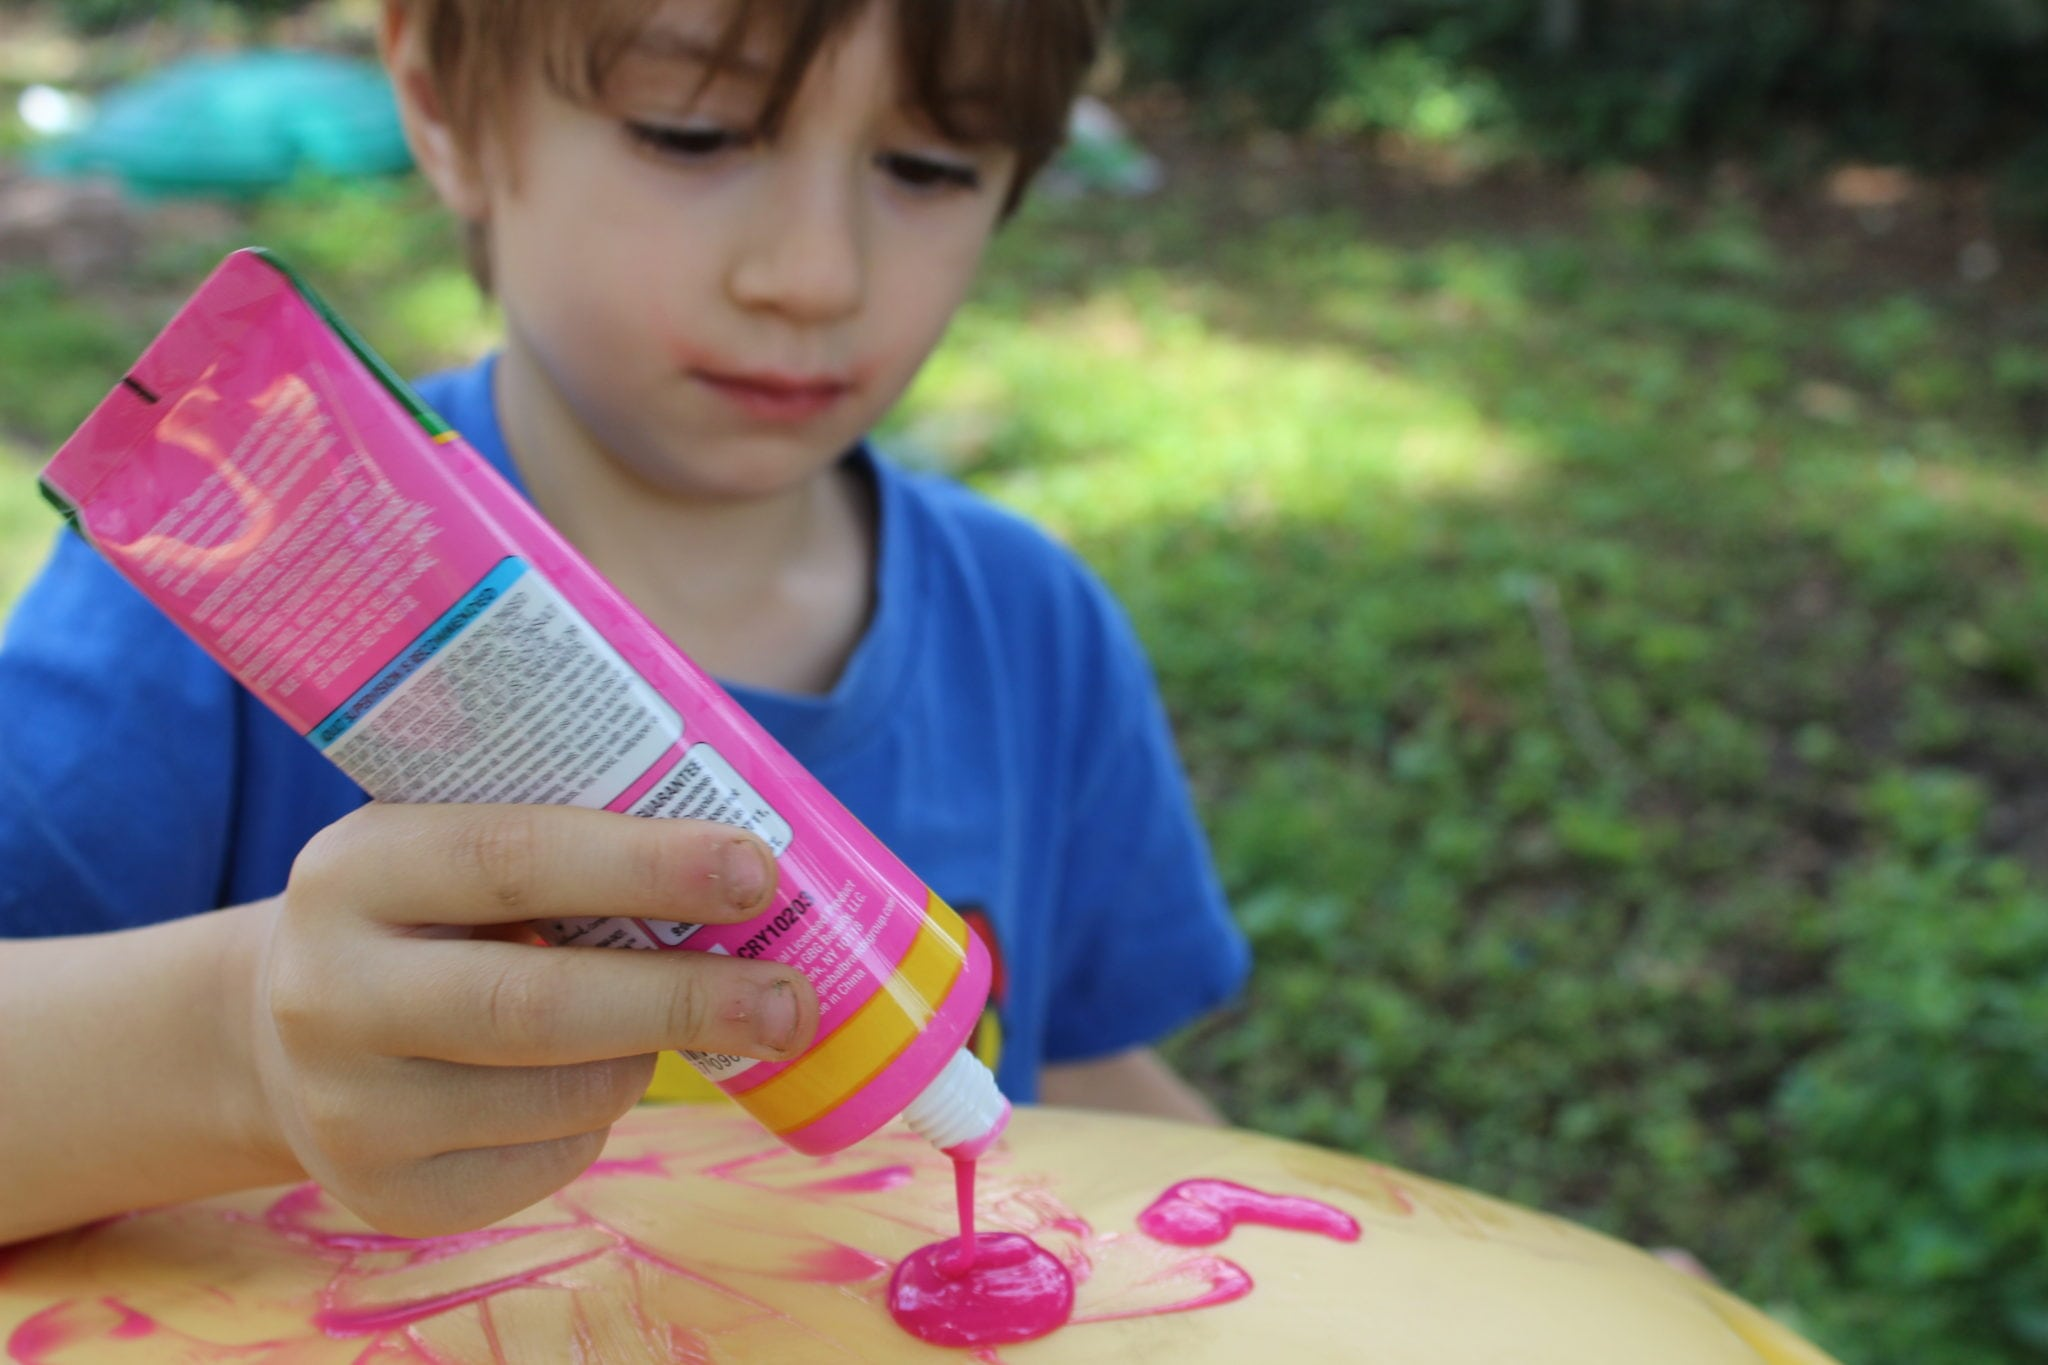 blonde toddler squeezing pink bath paint on yellow toy car